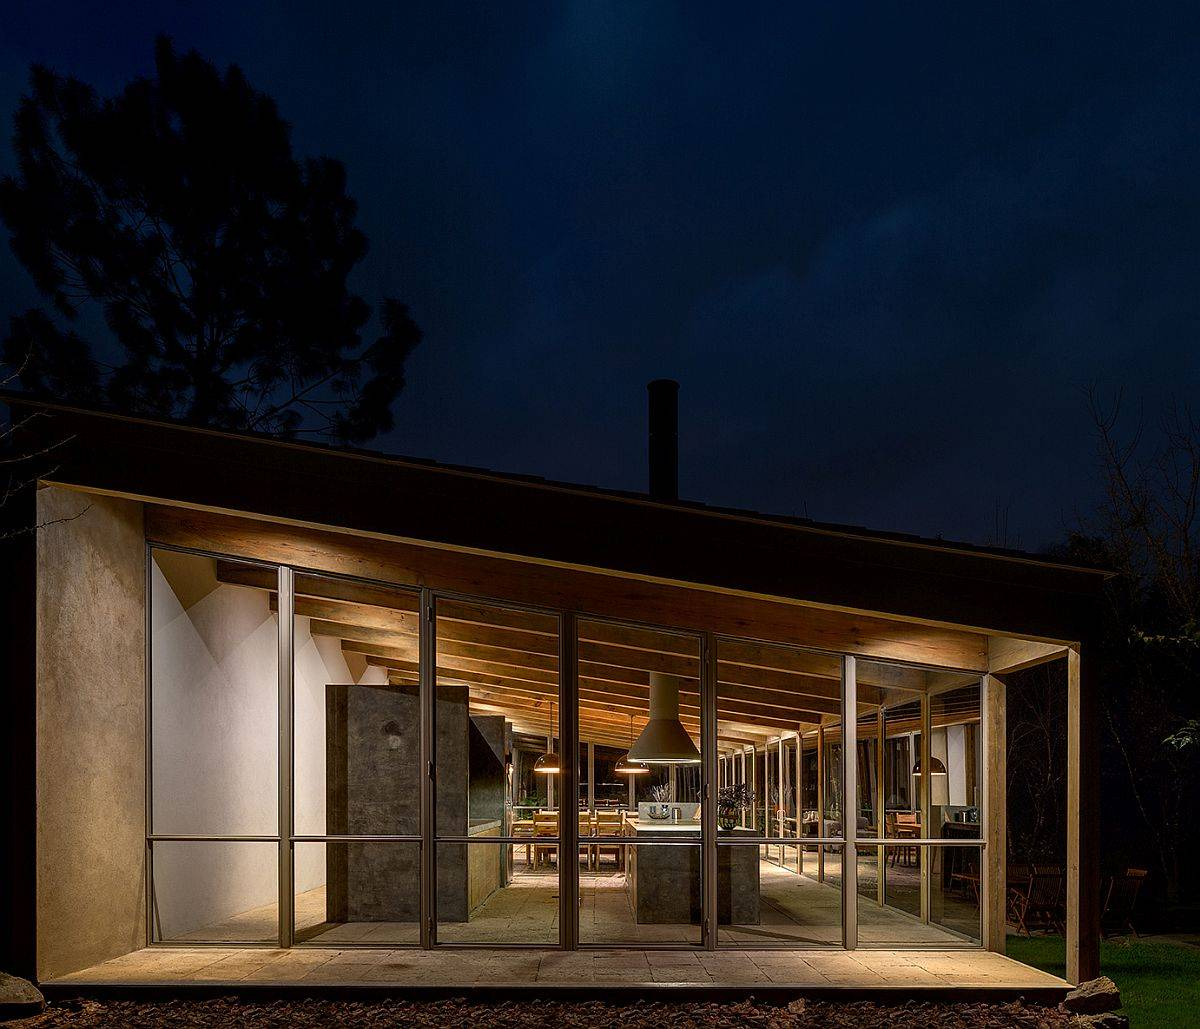 Sloped ceiling of the home is even more prominent after sunset thanks to warm lighting